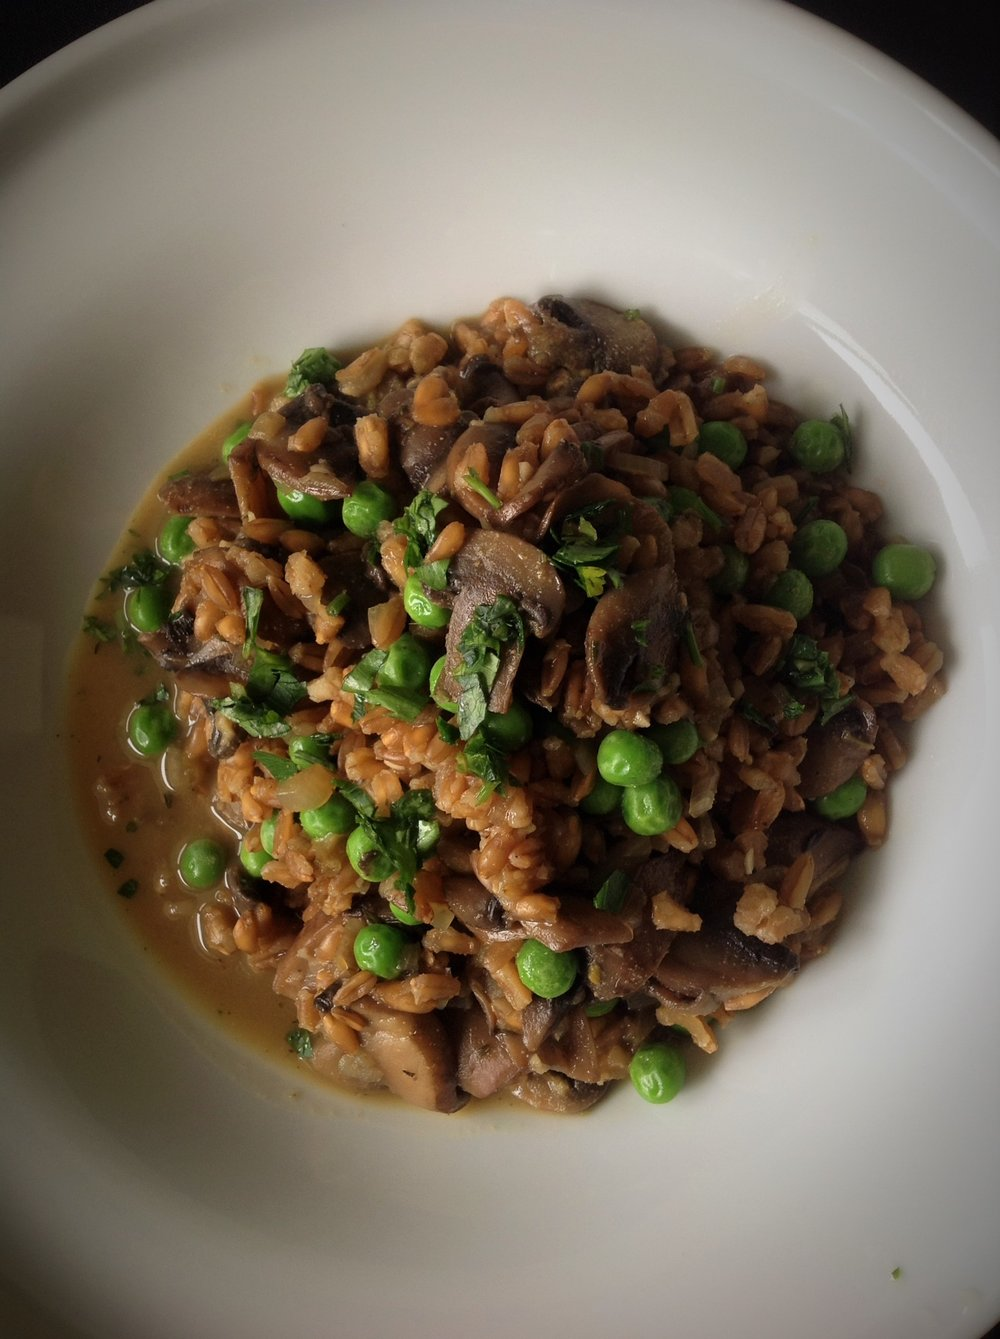 Mushroom Pea Faro Risotto - Healthy, Plant-based, Oil-Free, Vegan, Whole Grain Italian Recipe